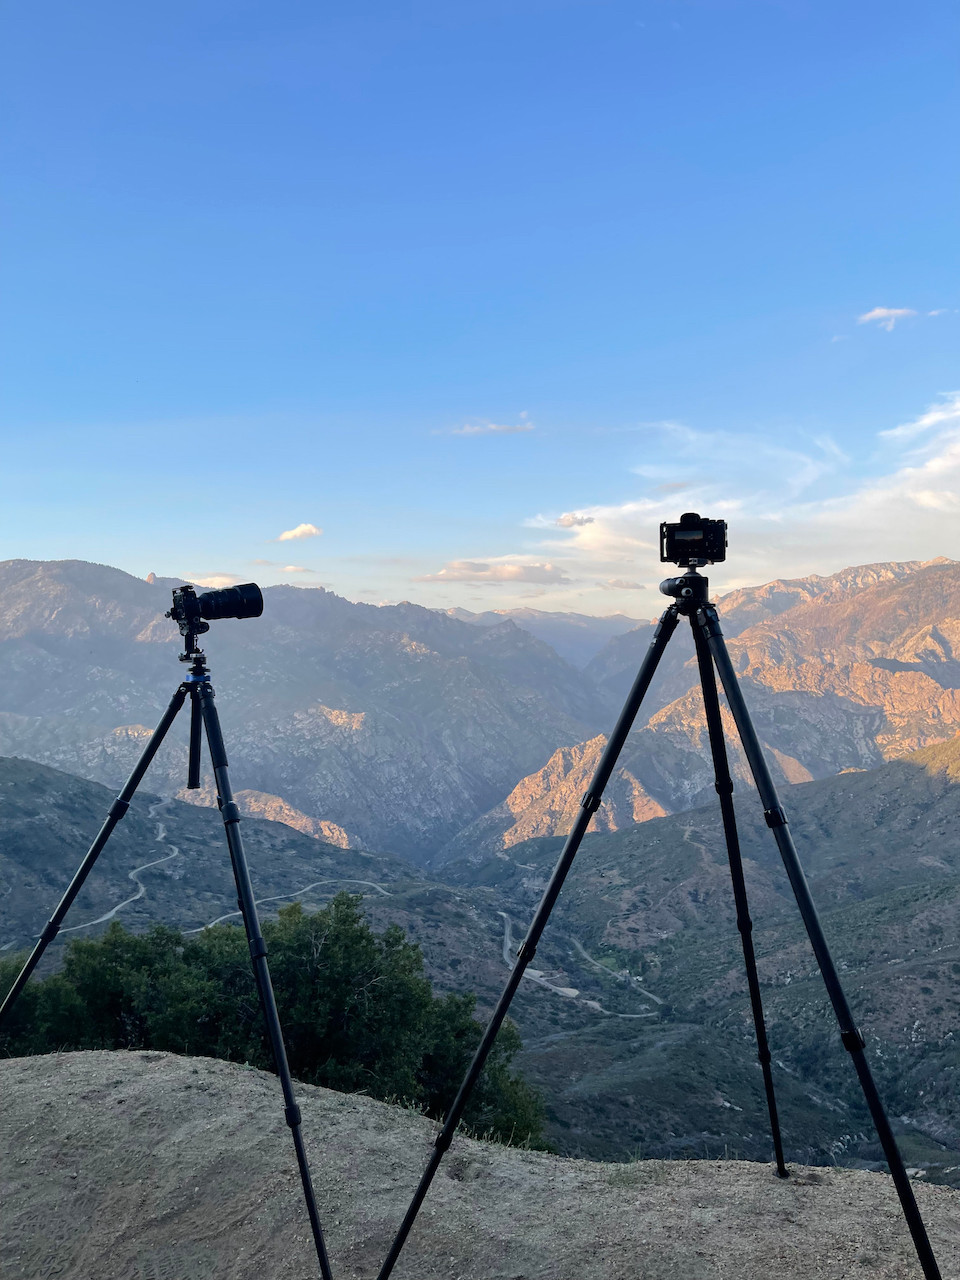 two cameras mounted on tripods stand triumphantly on a mountain ridge, ready to capture the glory of the lush hilly valley below